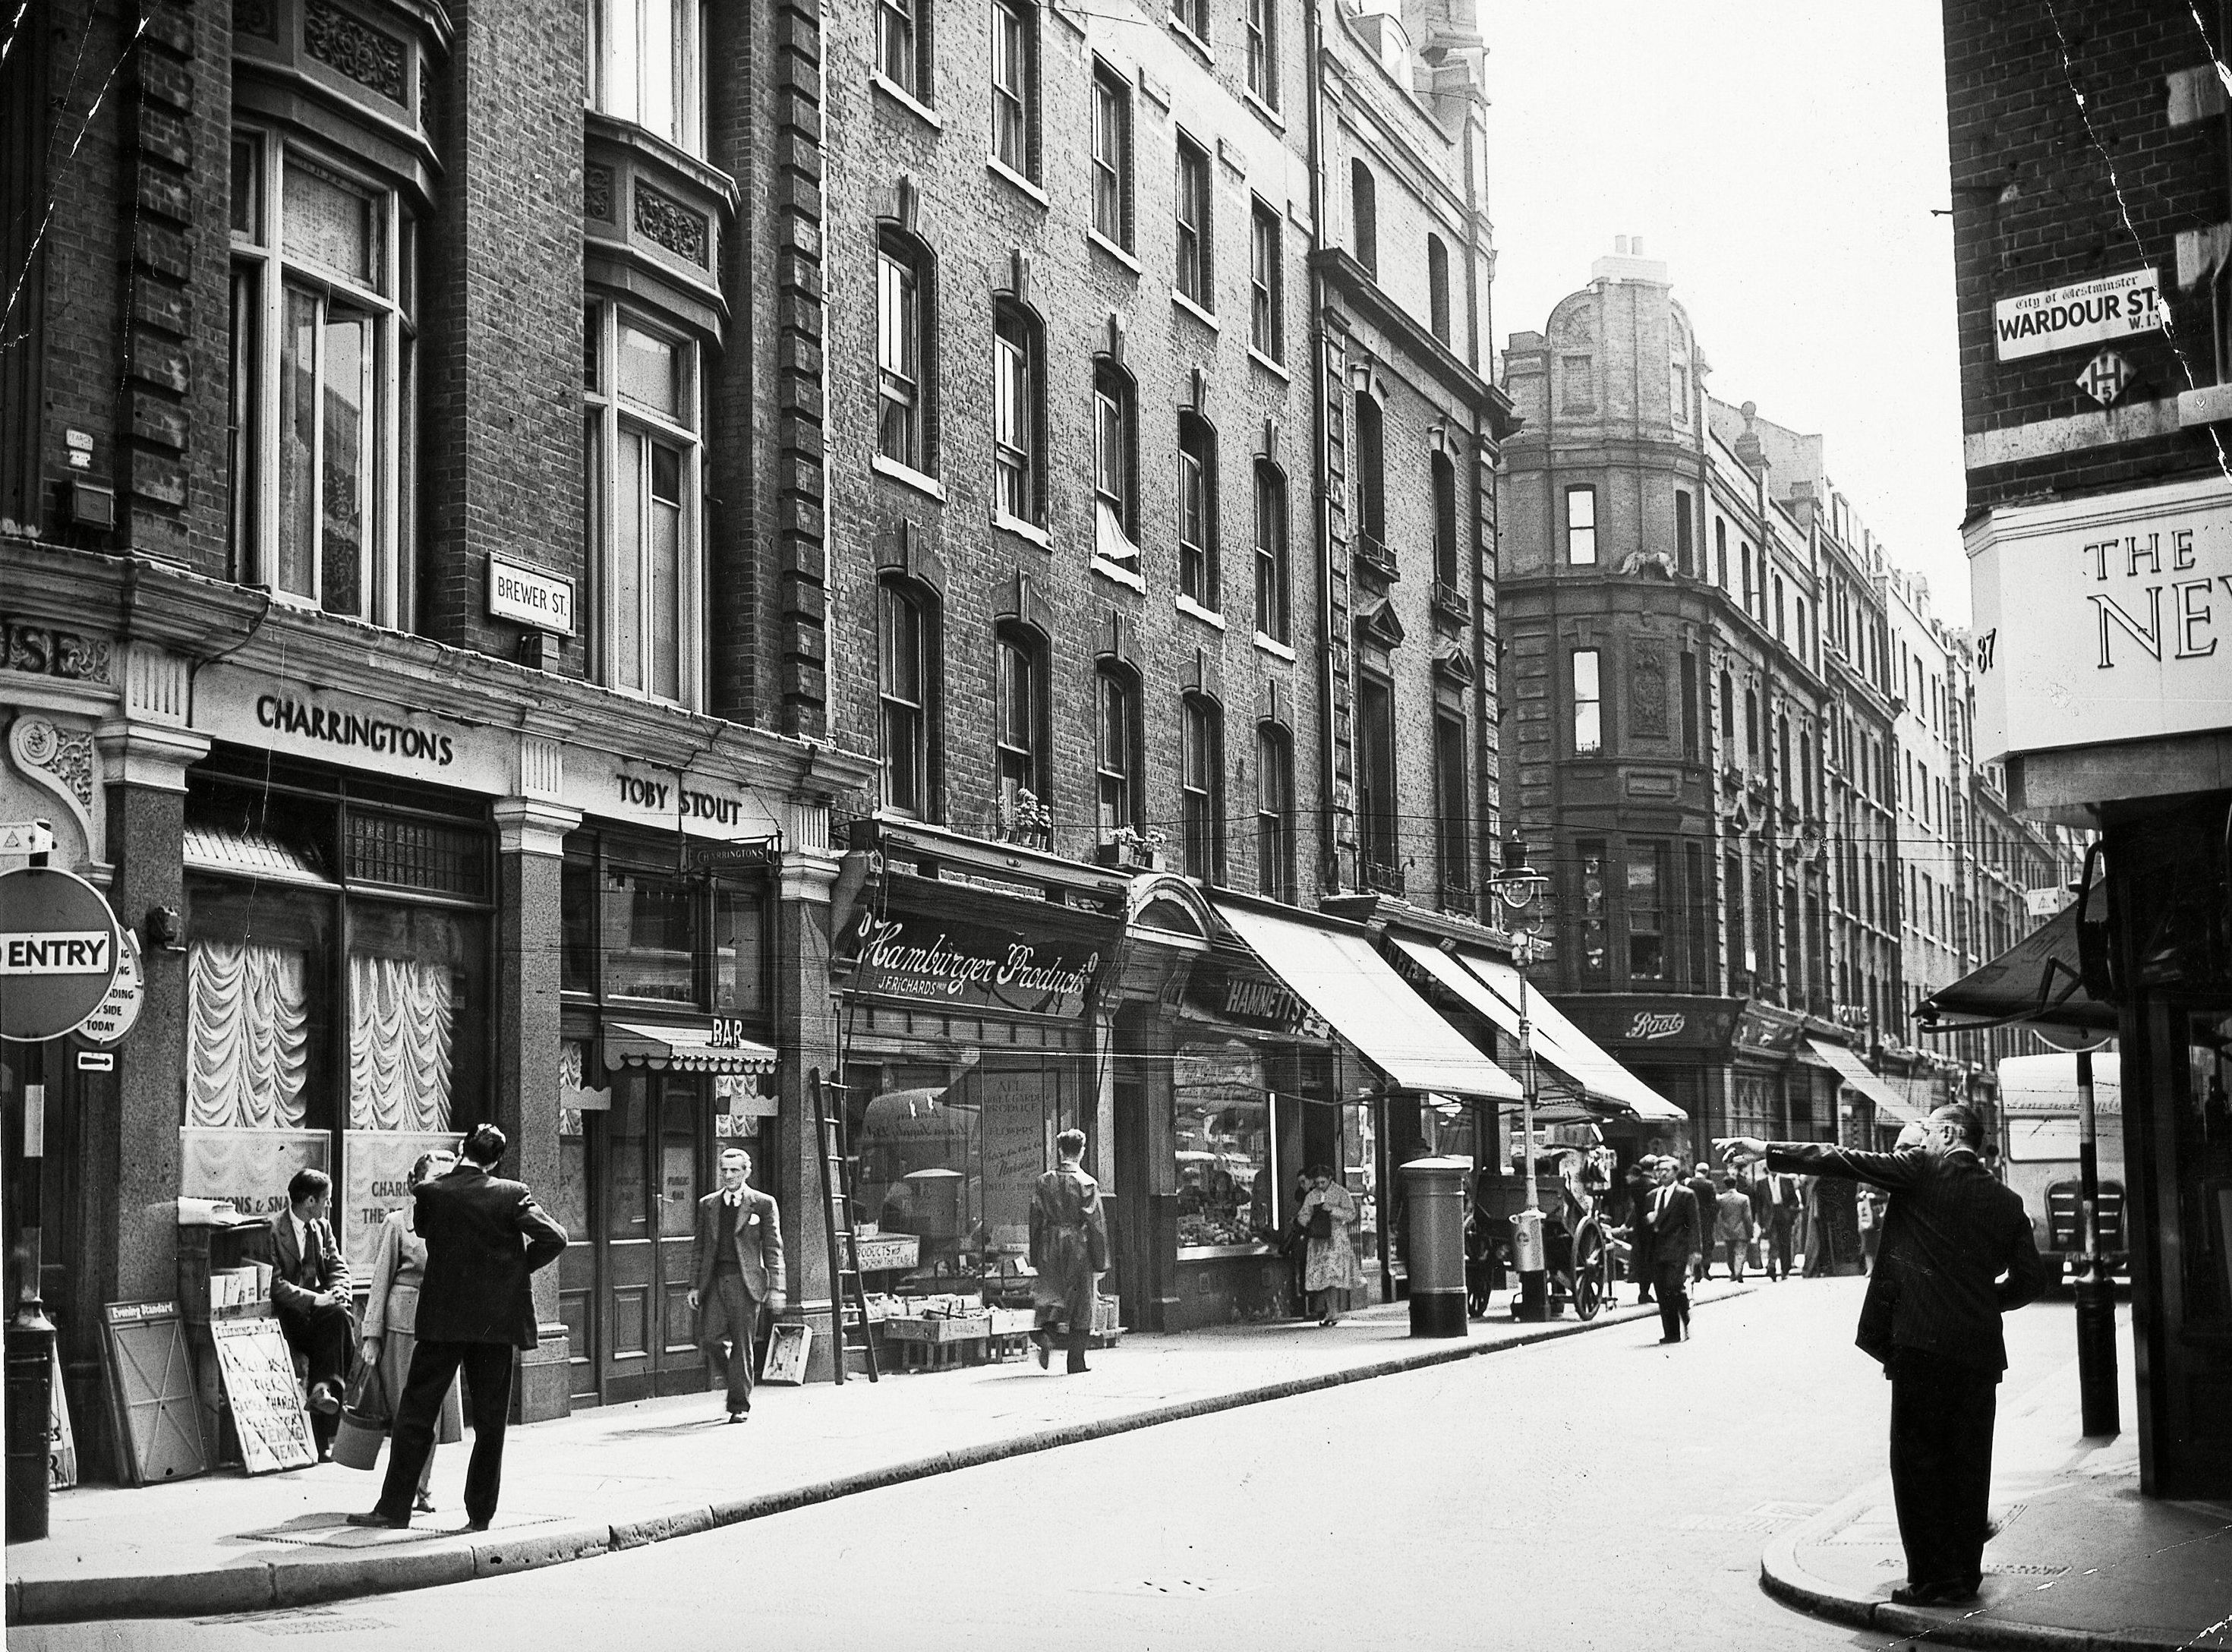 Brewer Street and the corner of Wardour Street in Soho, London, - Jul 1956. Photo by Daily Mail/REX/Shutterstock